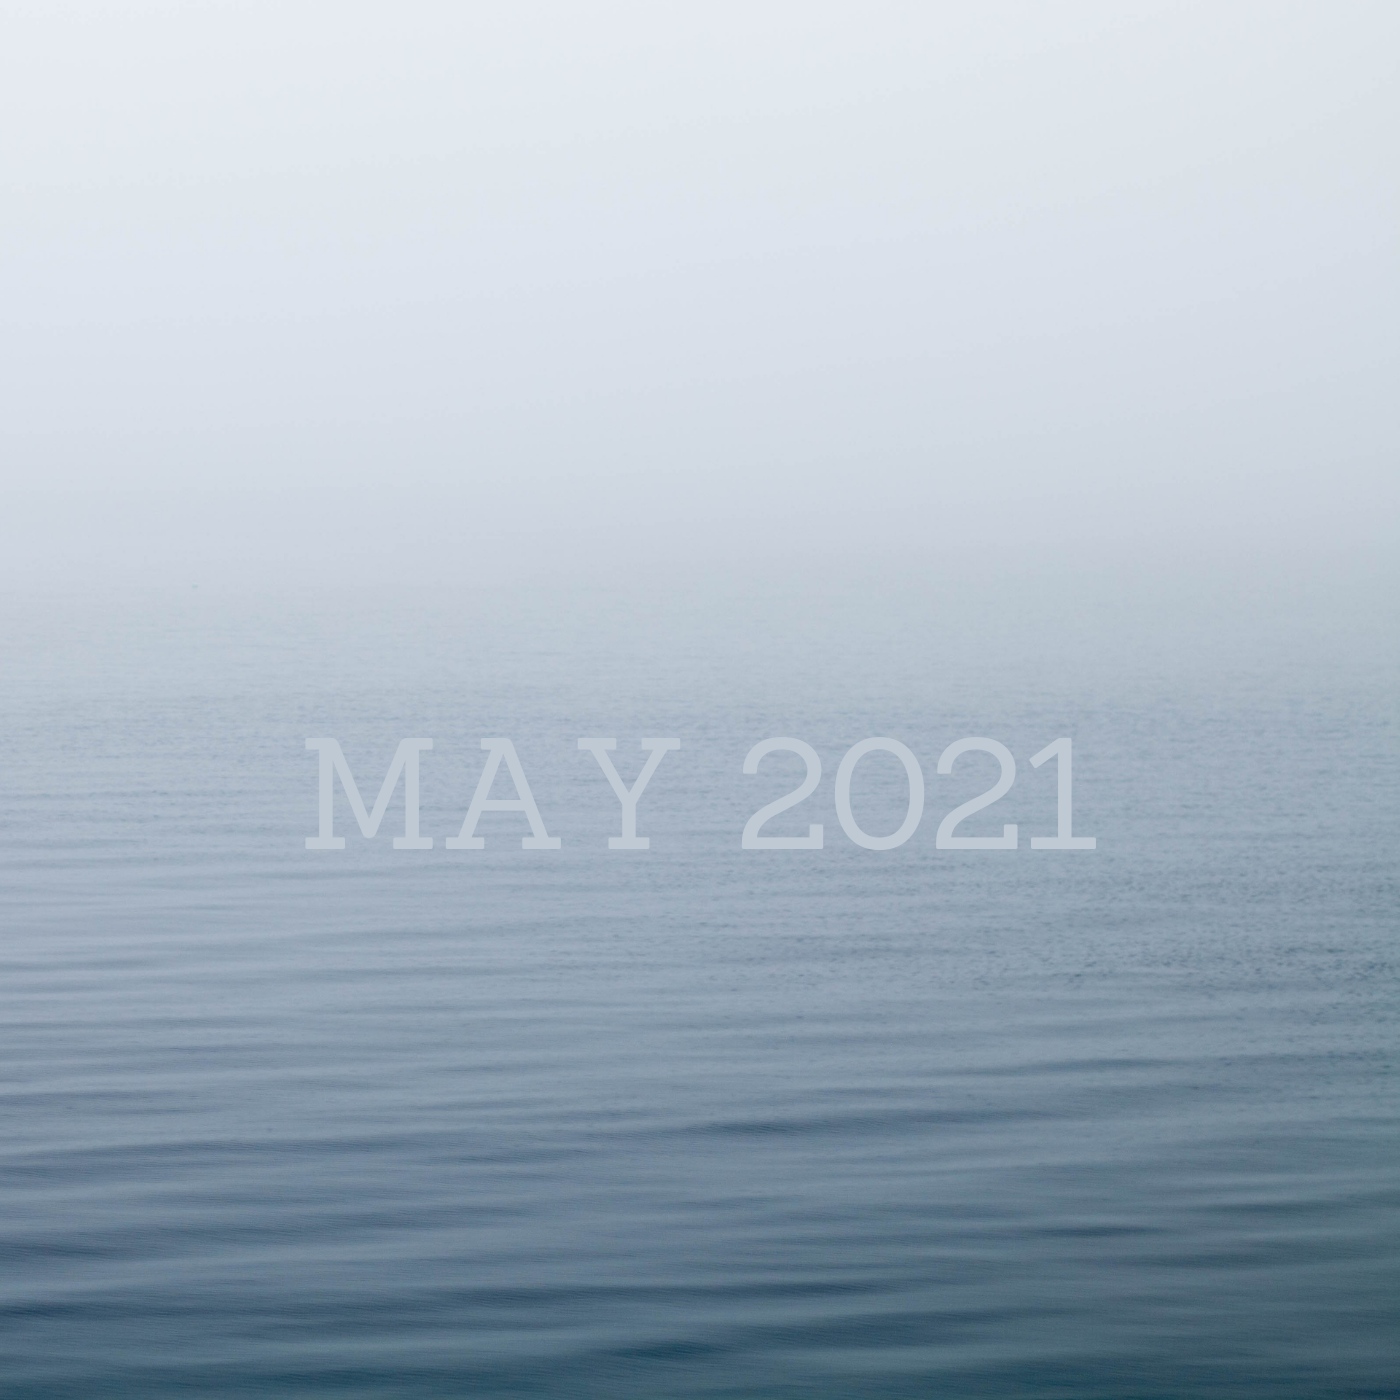 a square image of gently rippling water in blue and gray tones reading may 2021 in the center